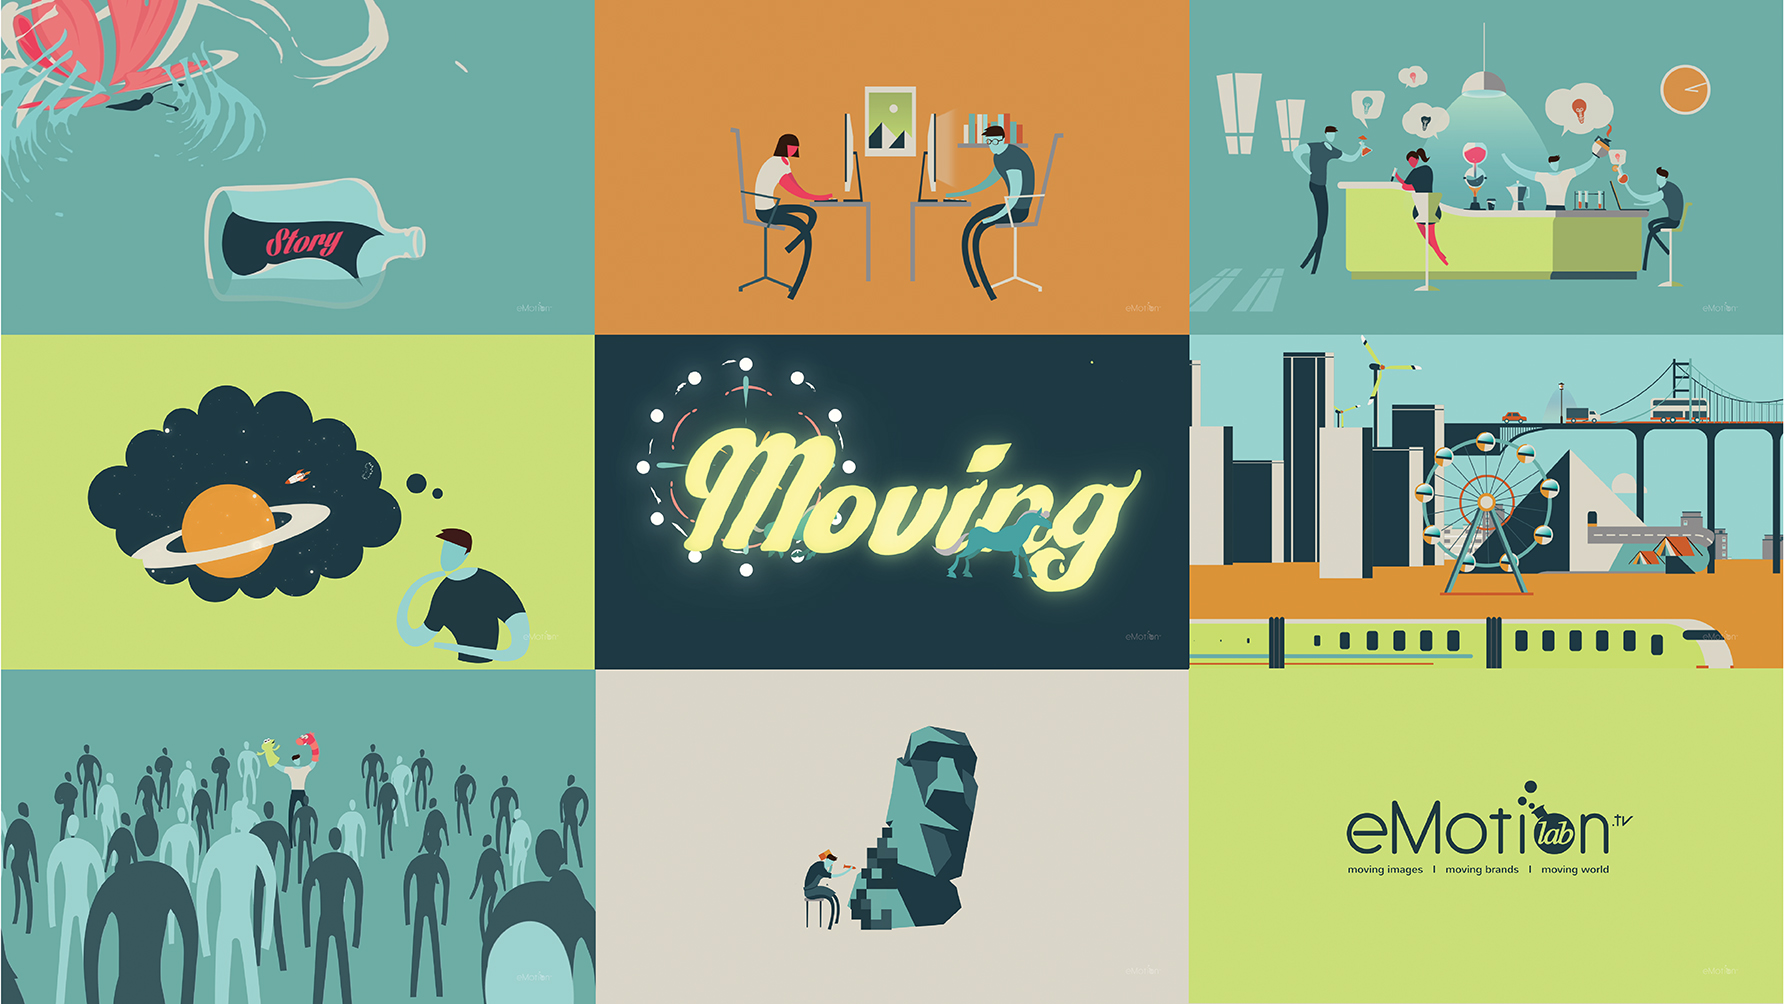 Hong Kong Motion Graphics, Motion Graphics Design, Hong Kong Video Production, Hong Kong Animation Production, Animation, Video Production, Promotional Video, Promotion, Online Video, Title Design, 2D Animation, 3D Animation,Explainer Video, Educational Video, House Ad